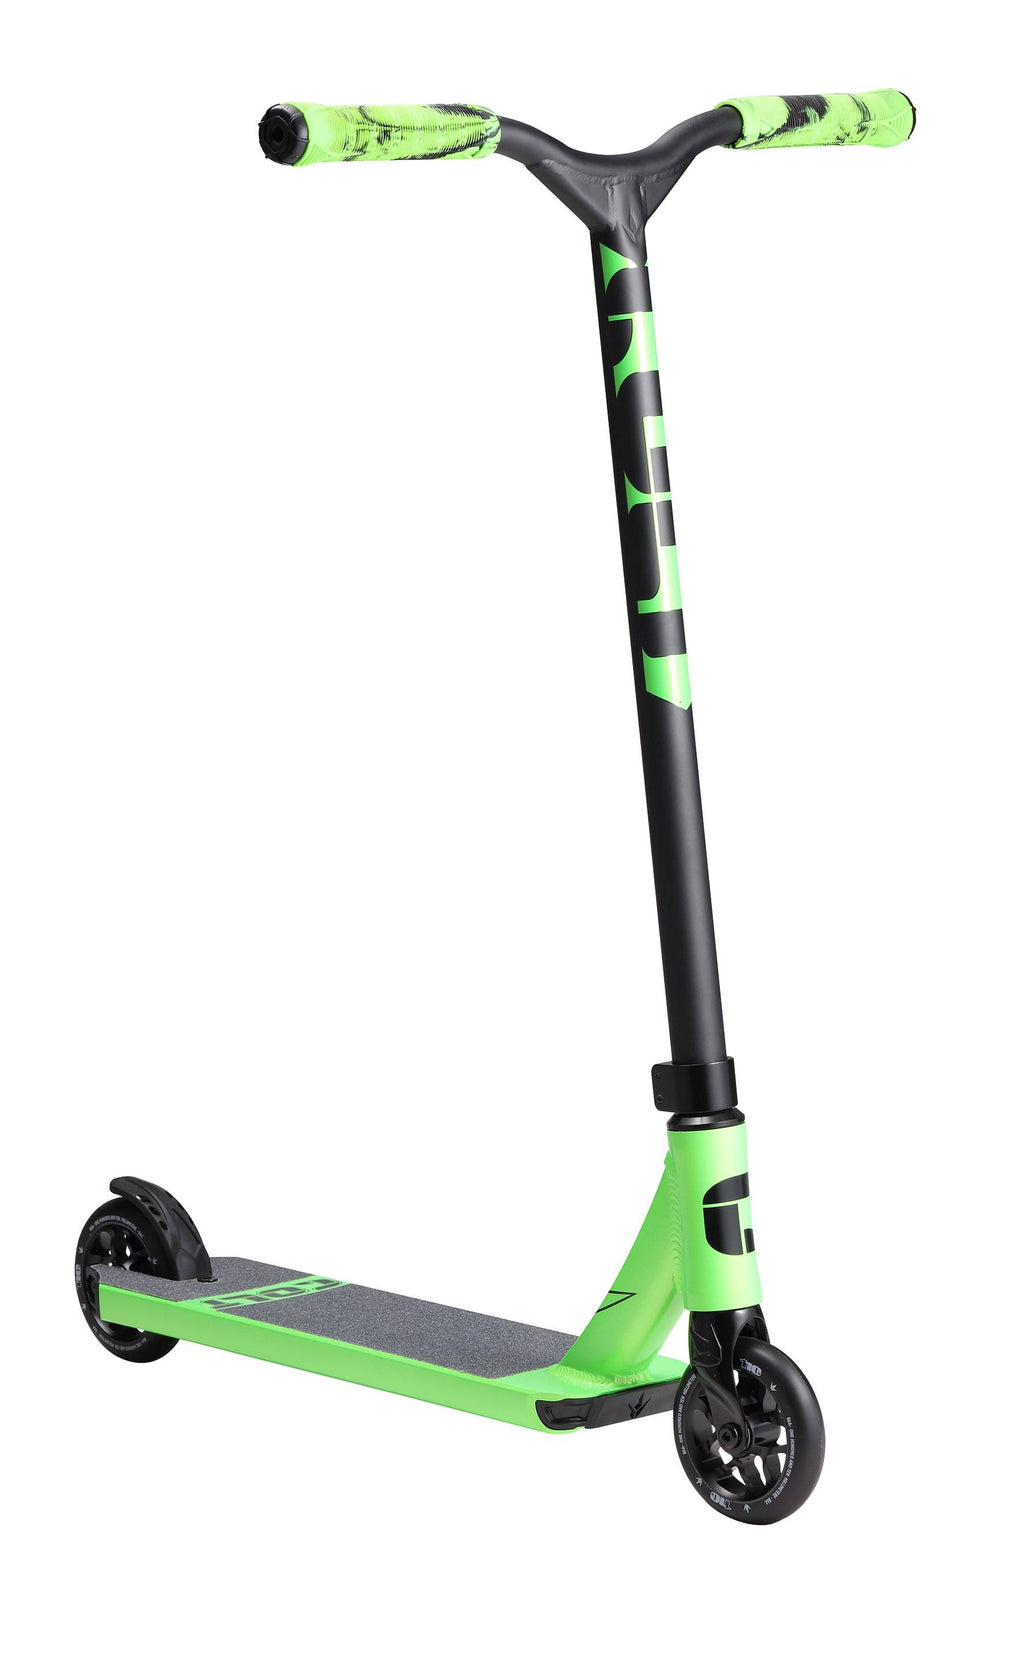 Black Green Blunt Envy Stunt Scooter - Main View